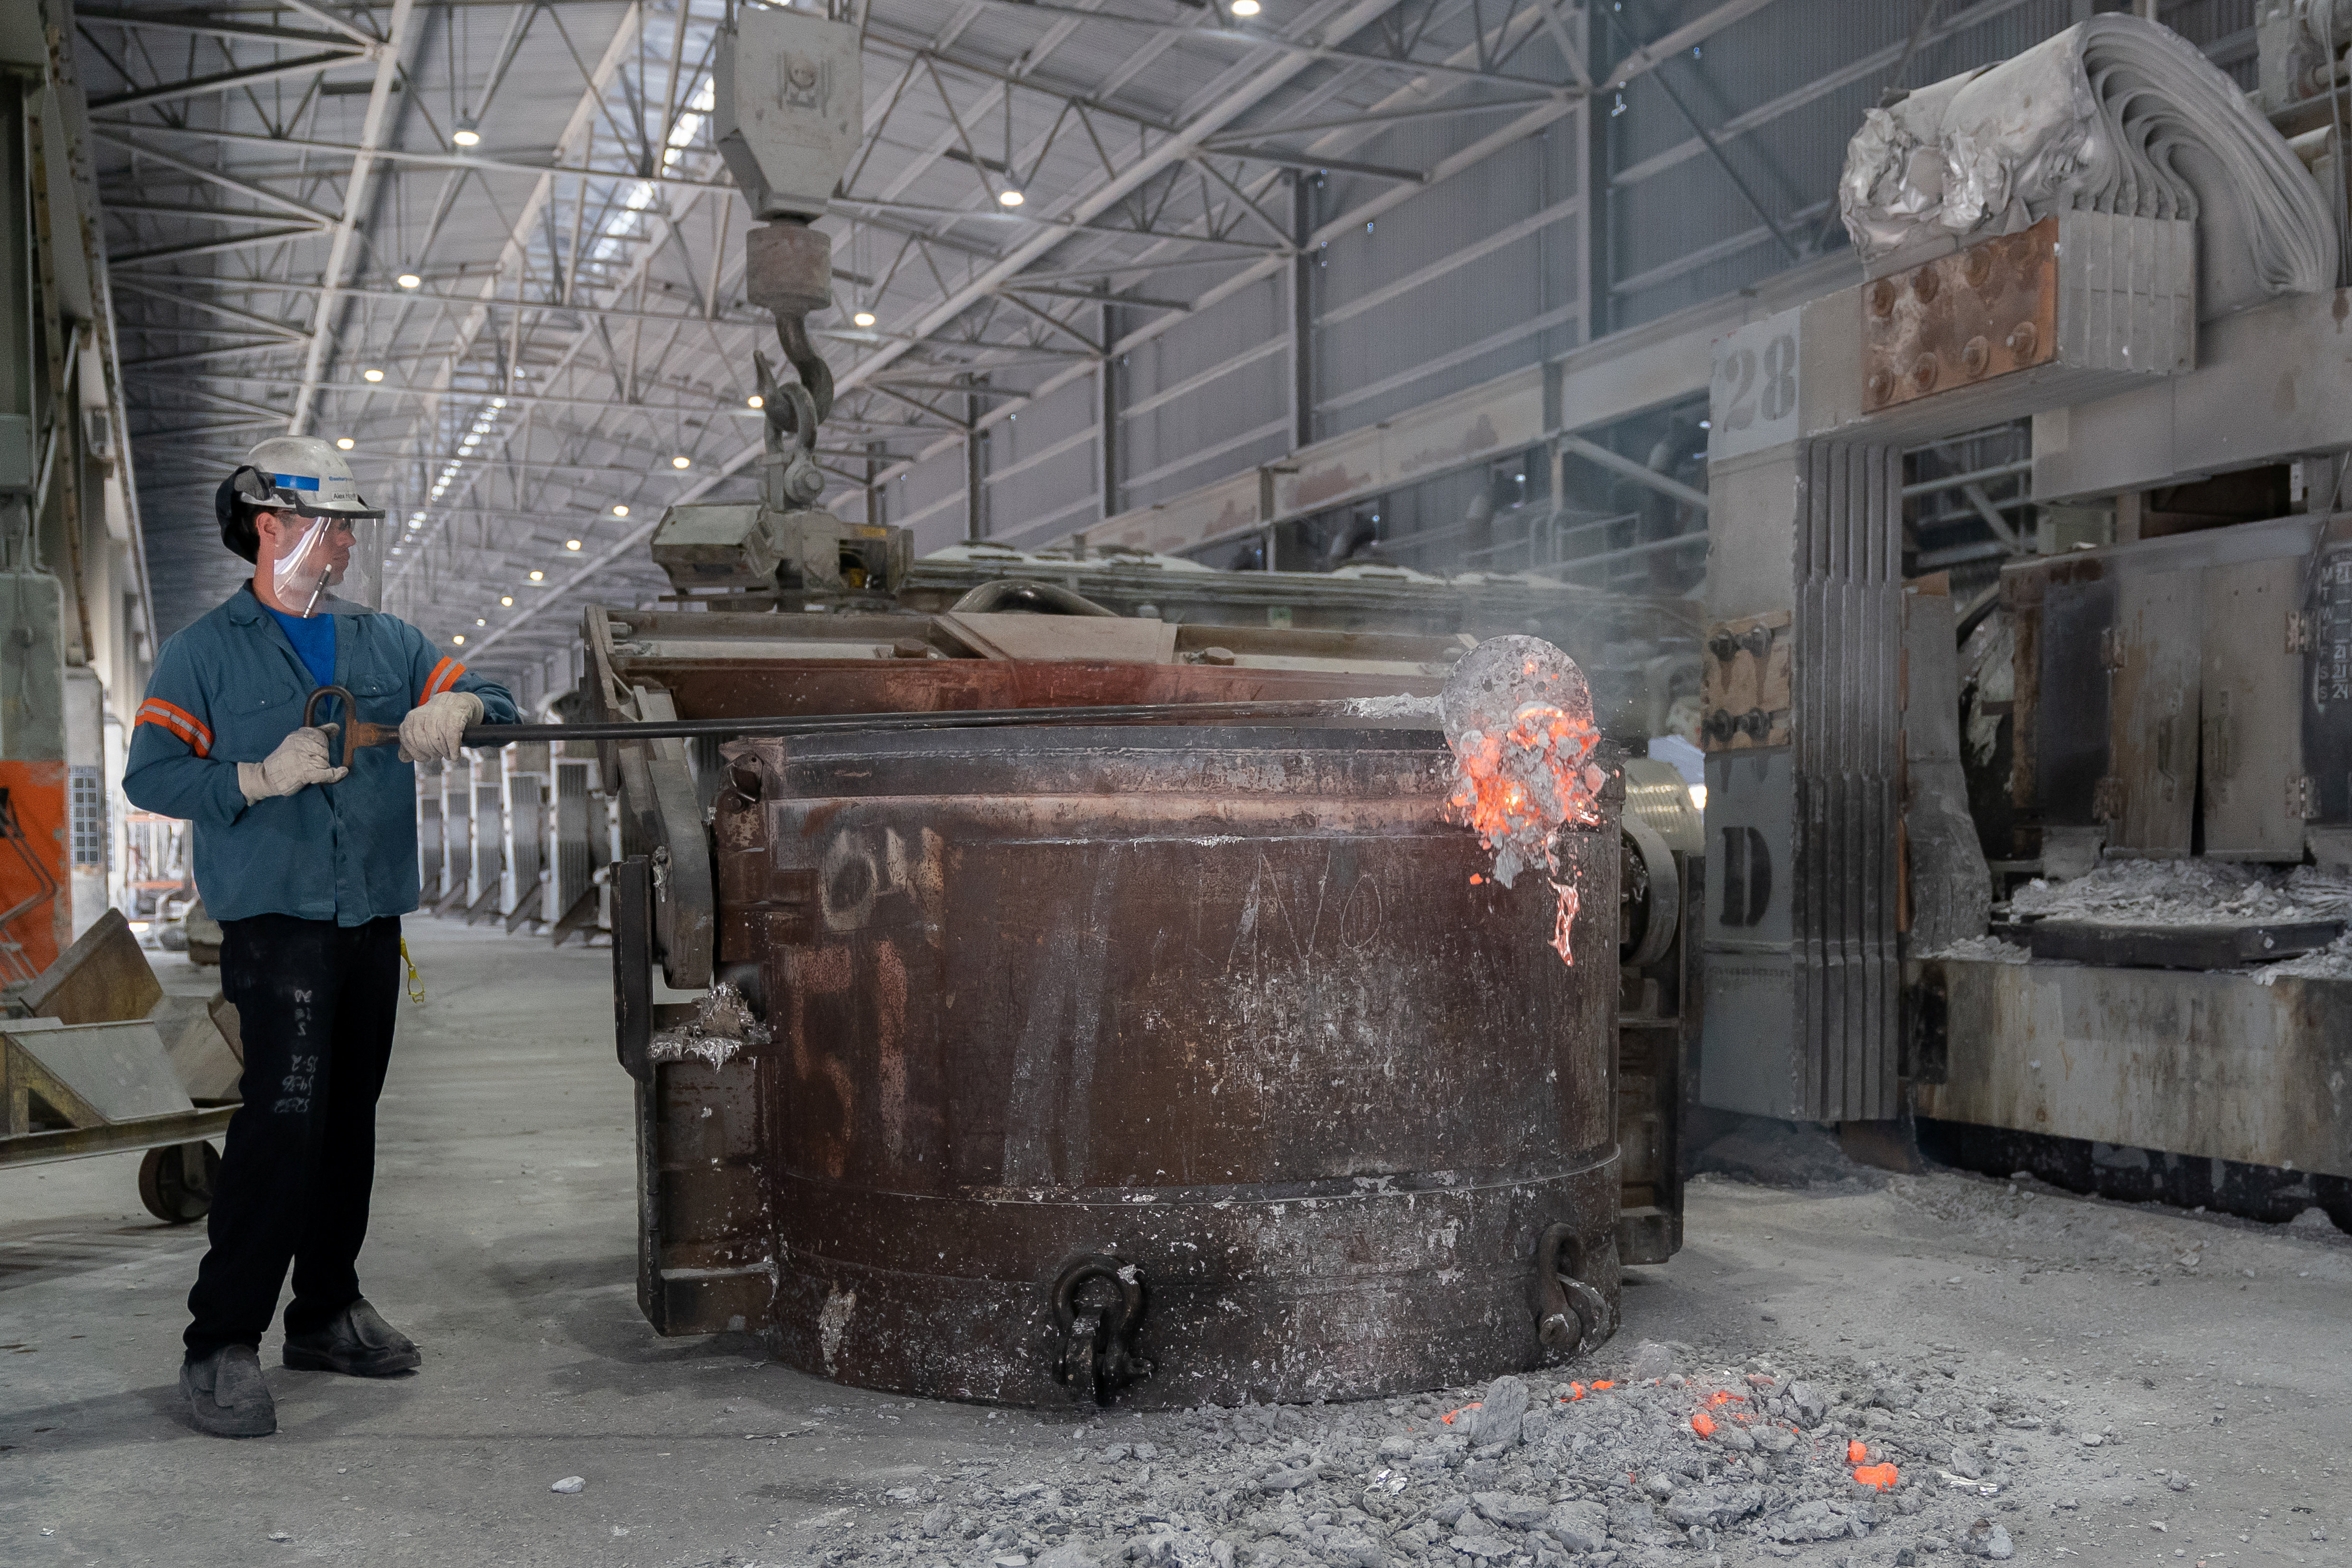 A metal worker clears a slag off the top of molten aluminum in a siphoning crucible at Century Aluminum Company in  Hawesville, Kentucky, U.S. May 14, 2019. Picture taken May 14, 2019.  REUTERS/Bryan Woolston